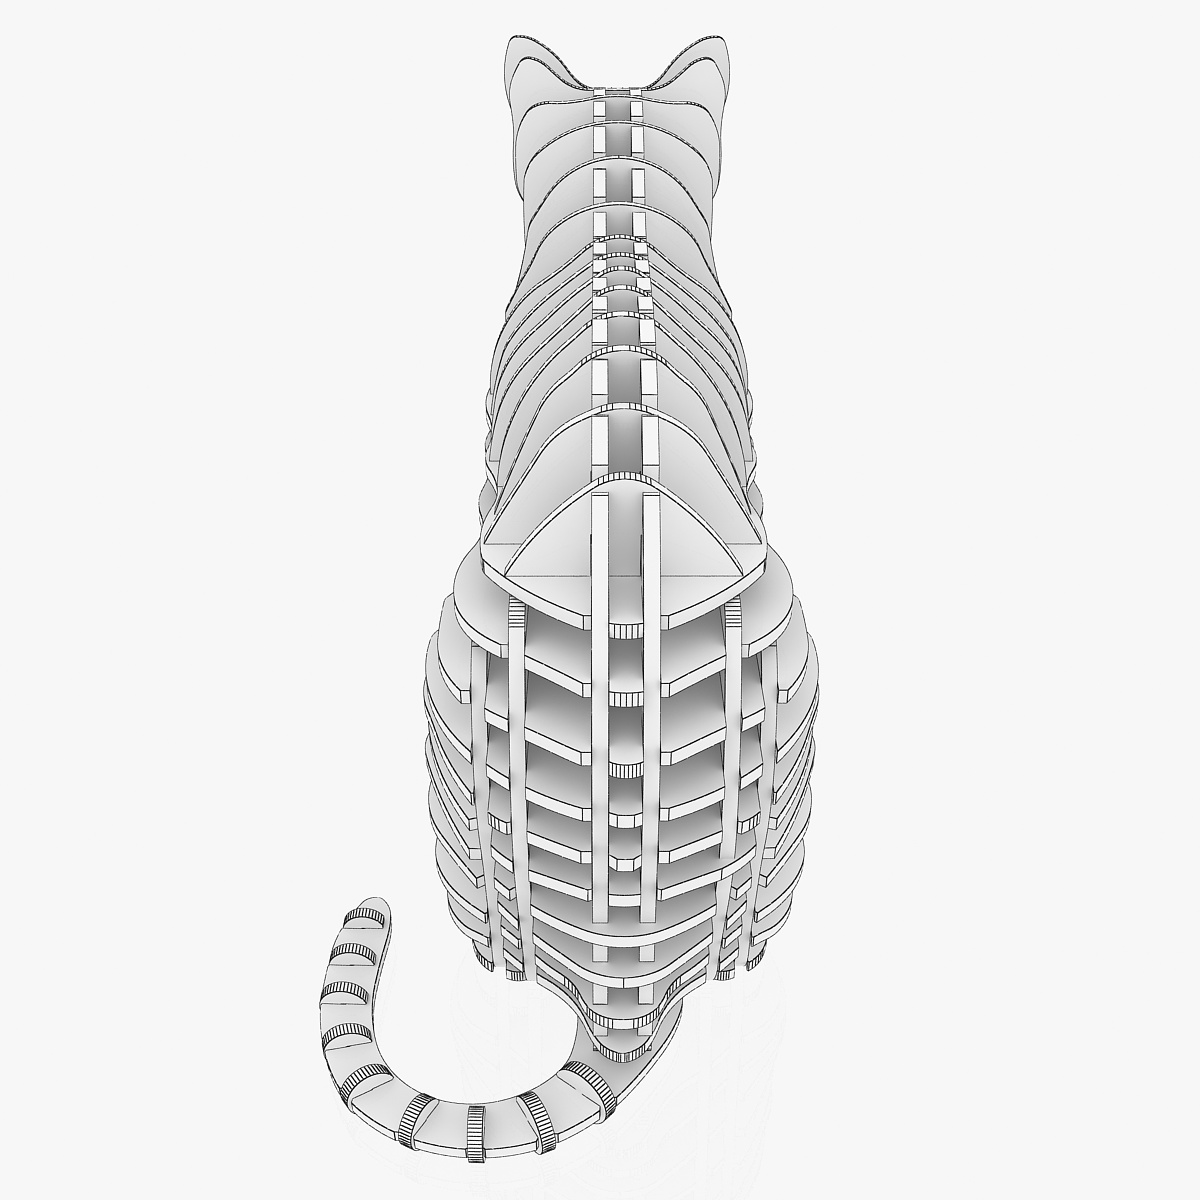 teka-teki kucing 1 3d model 3ds max dxf dwg fbx dae obj 223467